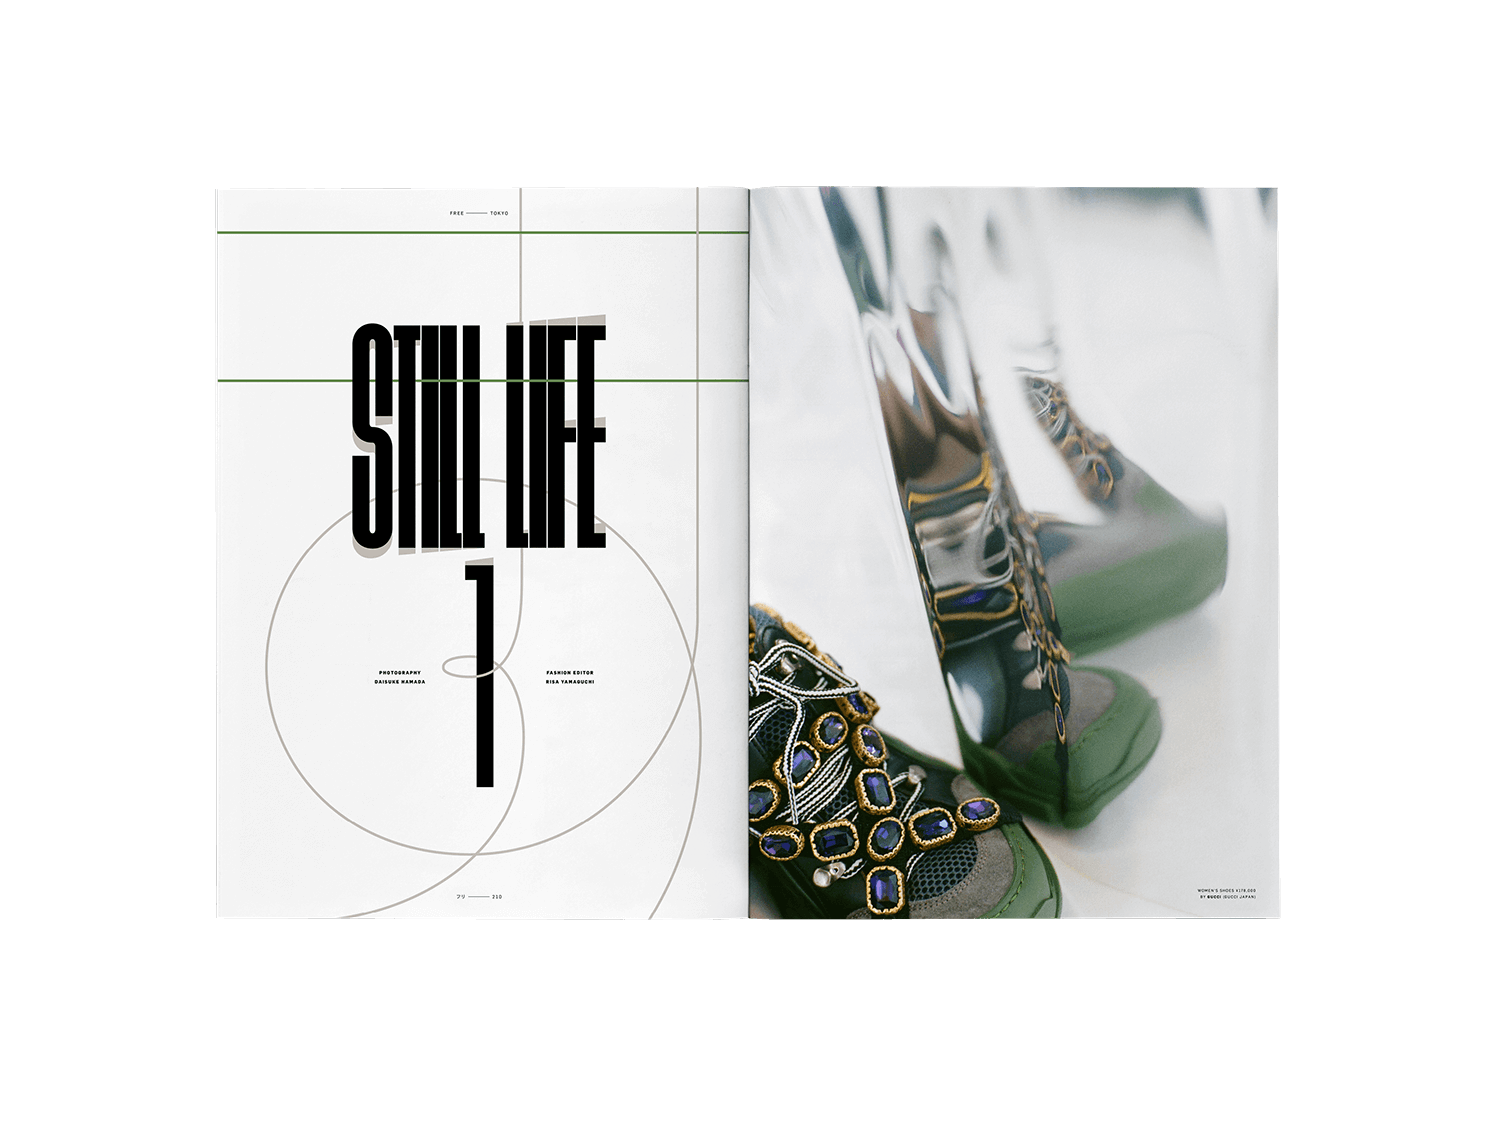 FREE-MAG_ISSUE-08_103-compressor